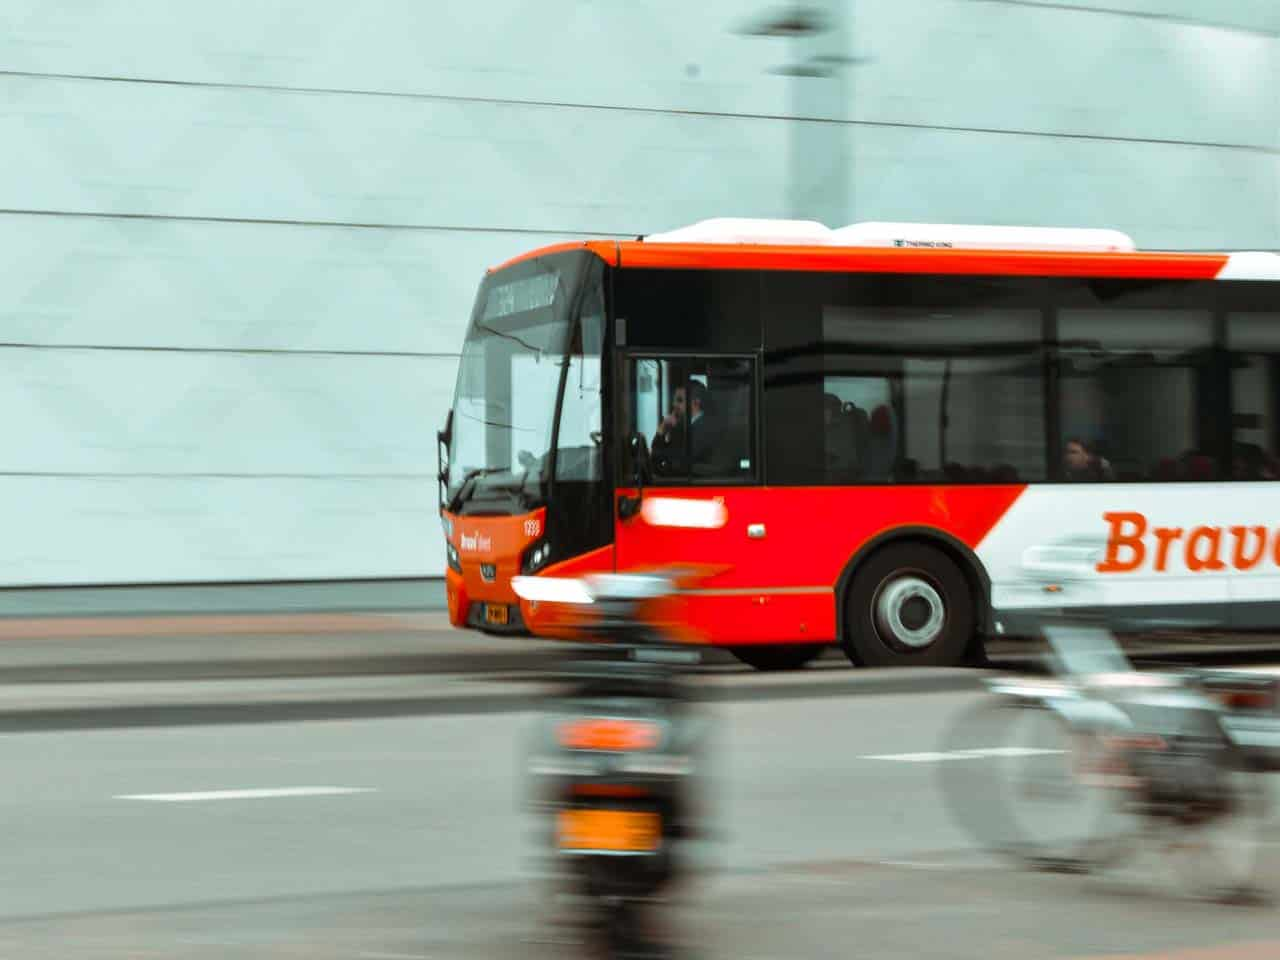 As A Passenger, How Can I Prove Liability For My Injuries After An Airport Shuttle Accident